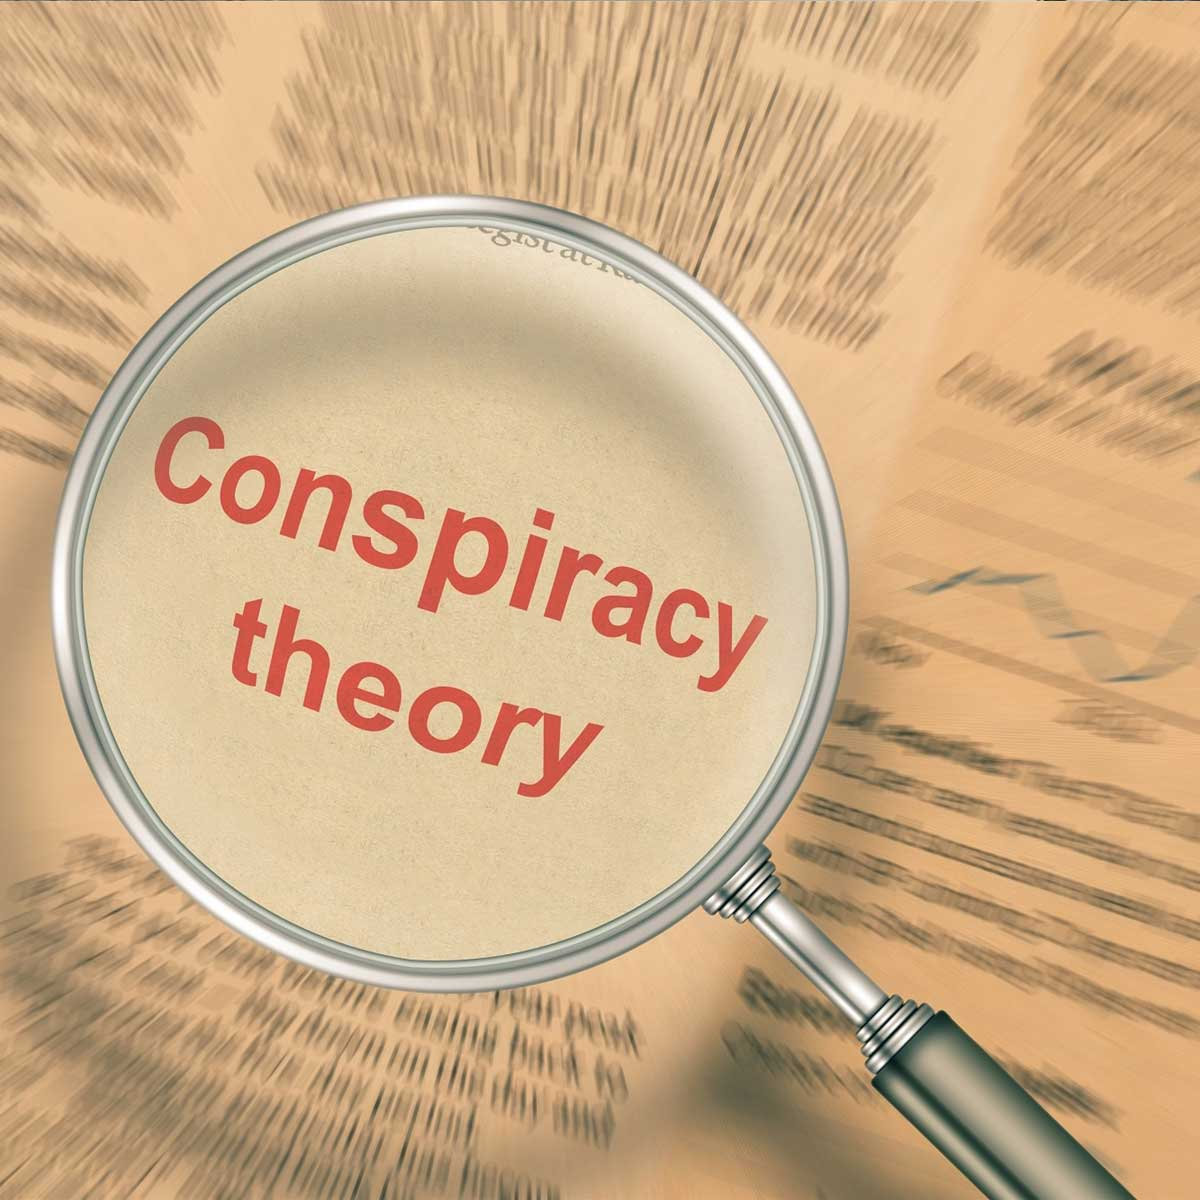 Conspiracy Theories - How Did We Get So Far So Fast?